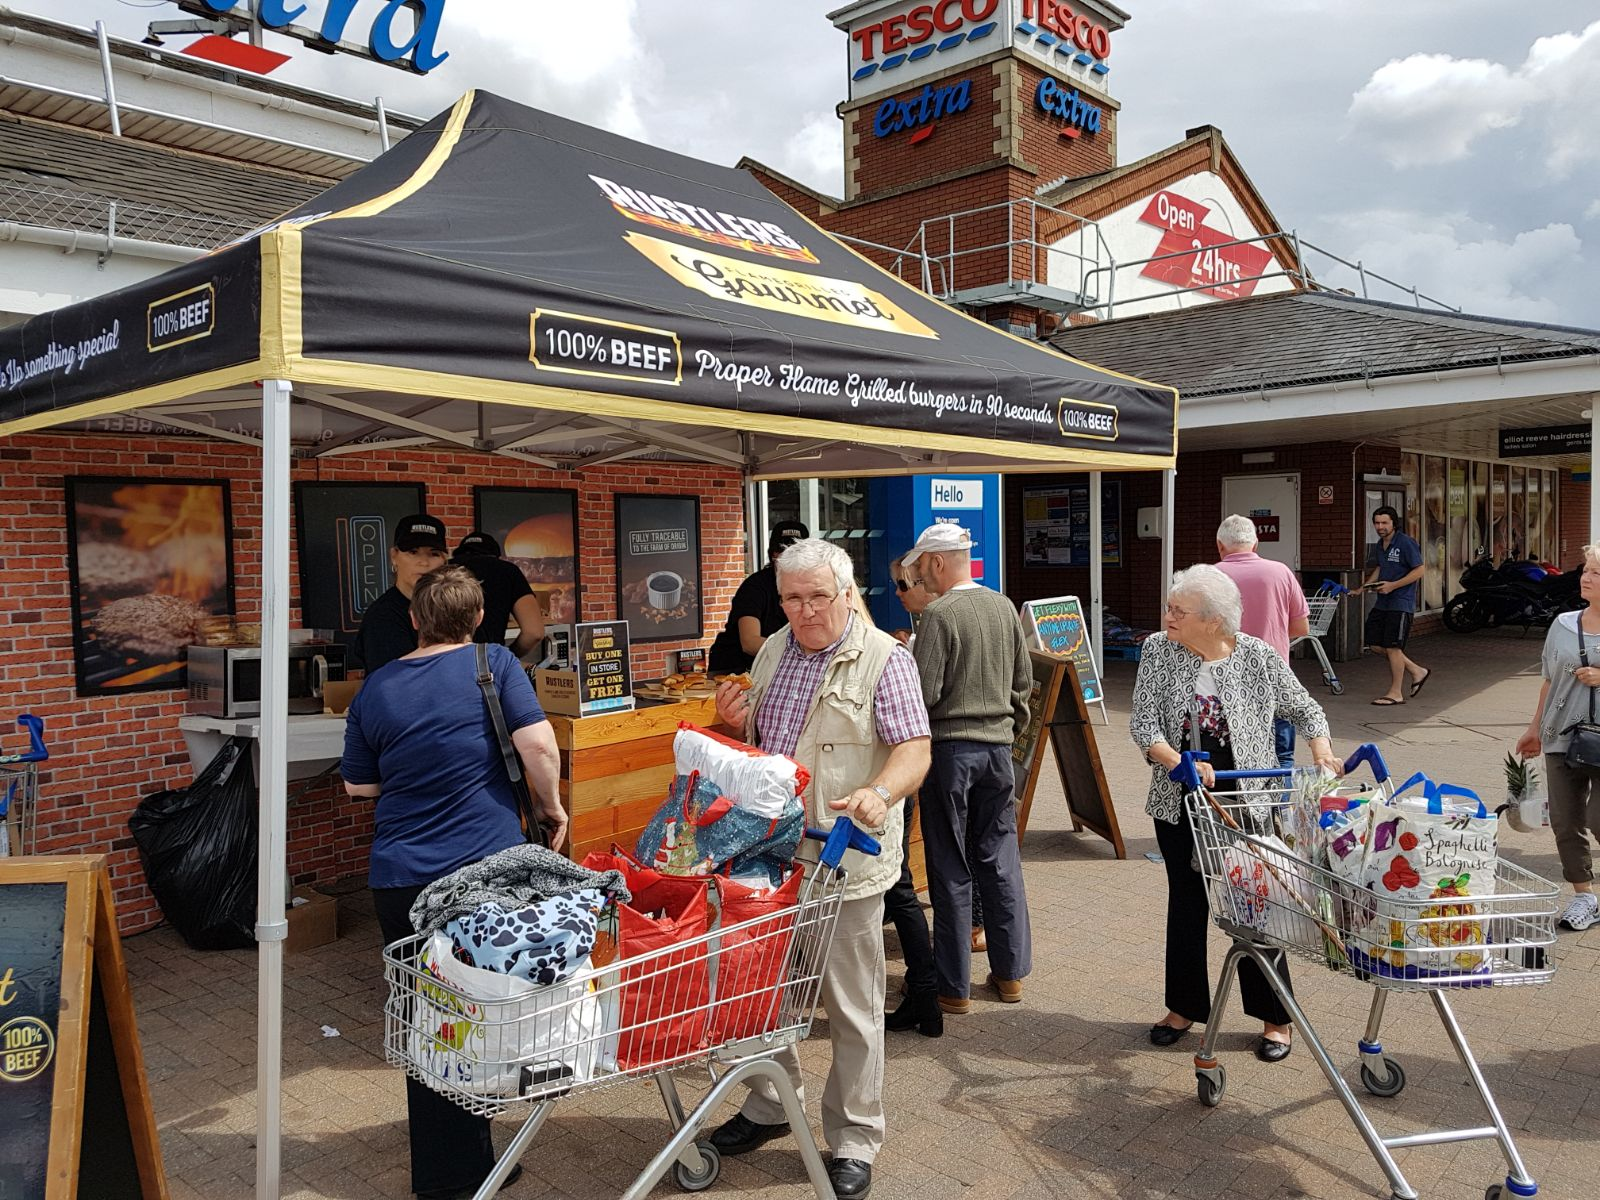 Rustlers-Gourmet,-Experiential-Sampling-at-Tesco,- Supermarkets